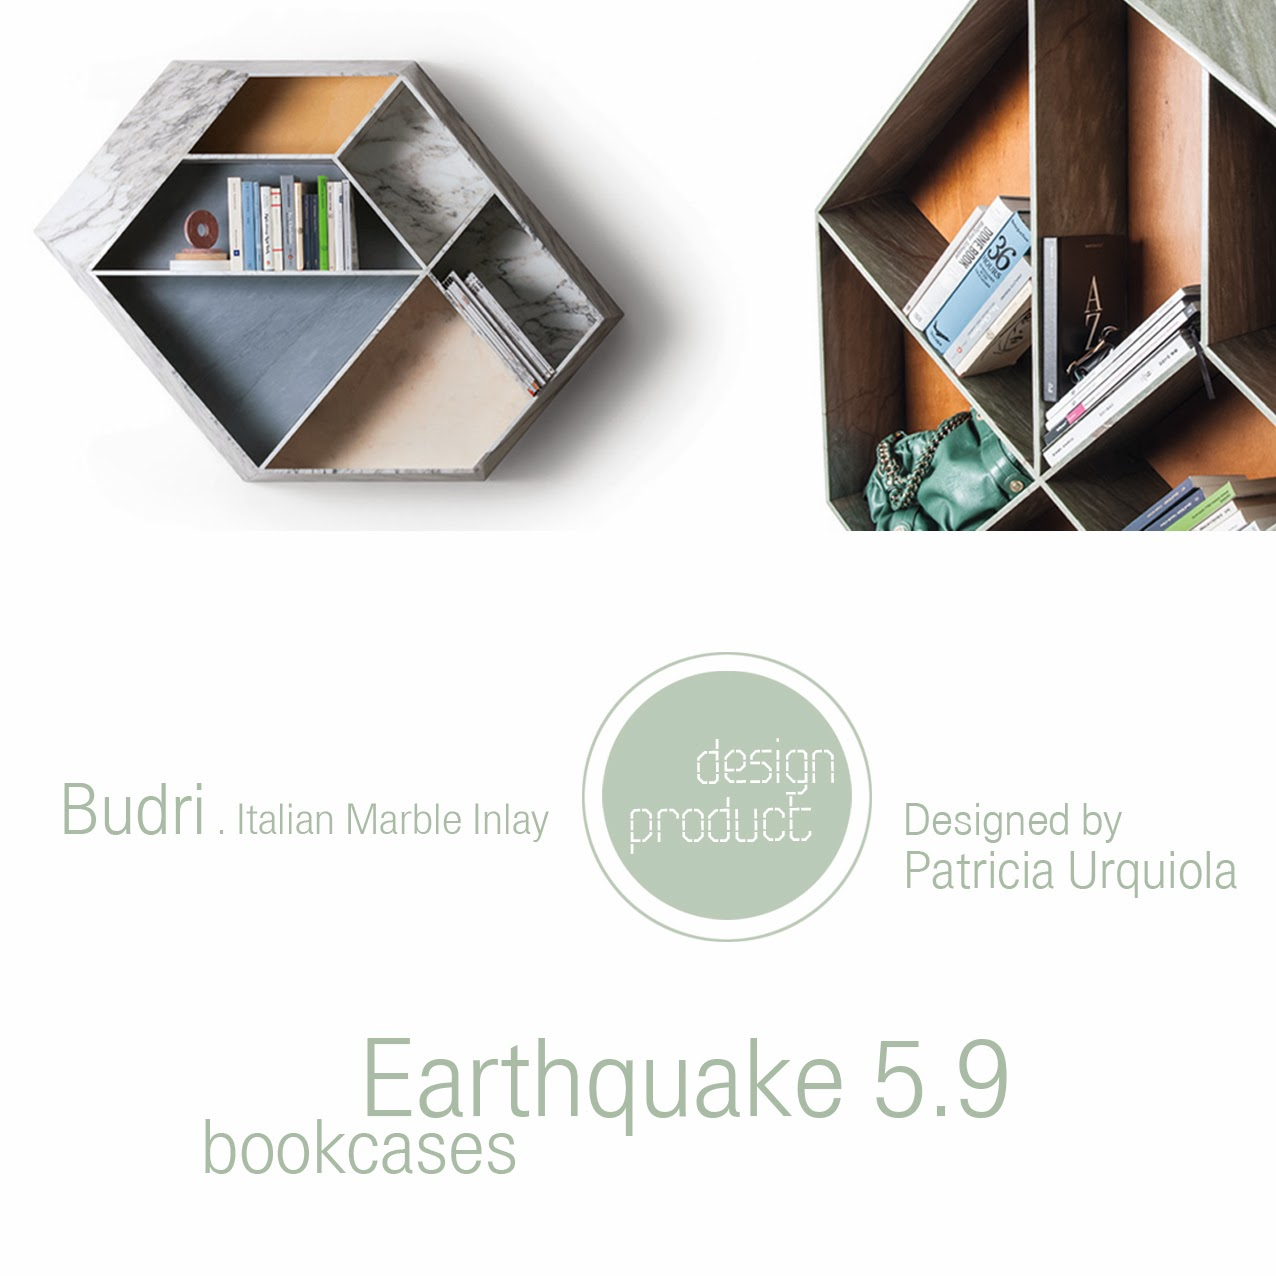 Earthquake 5.9 collection . the Round Button blog